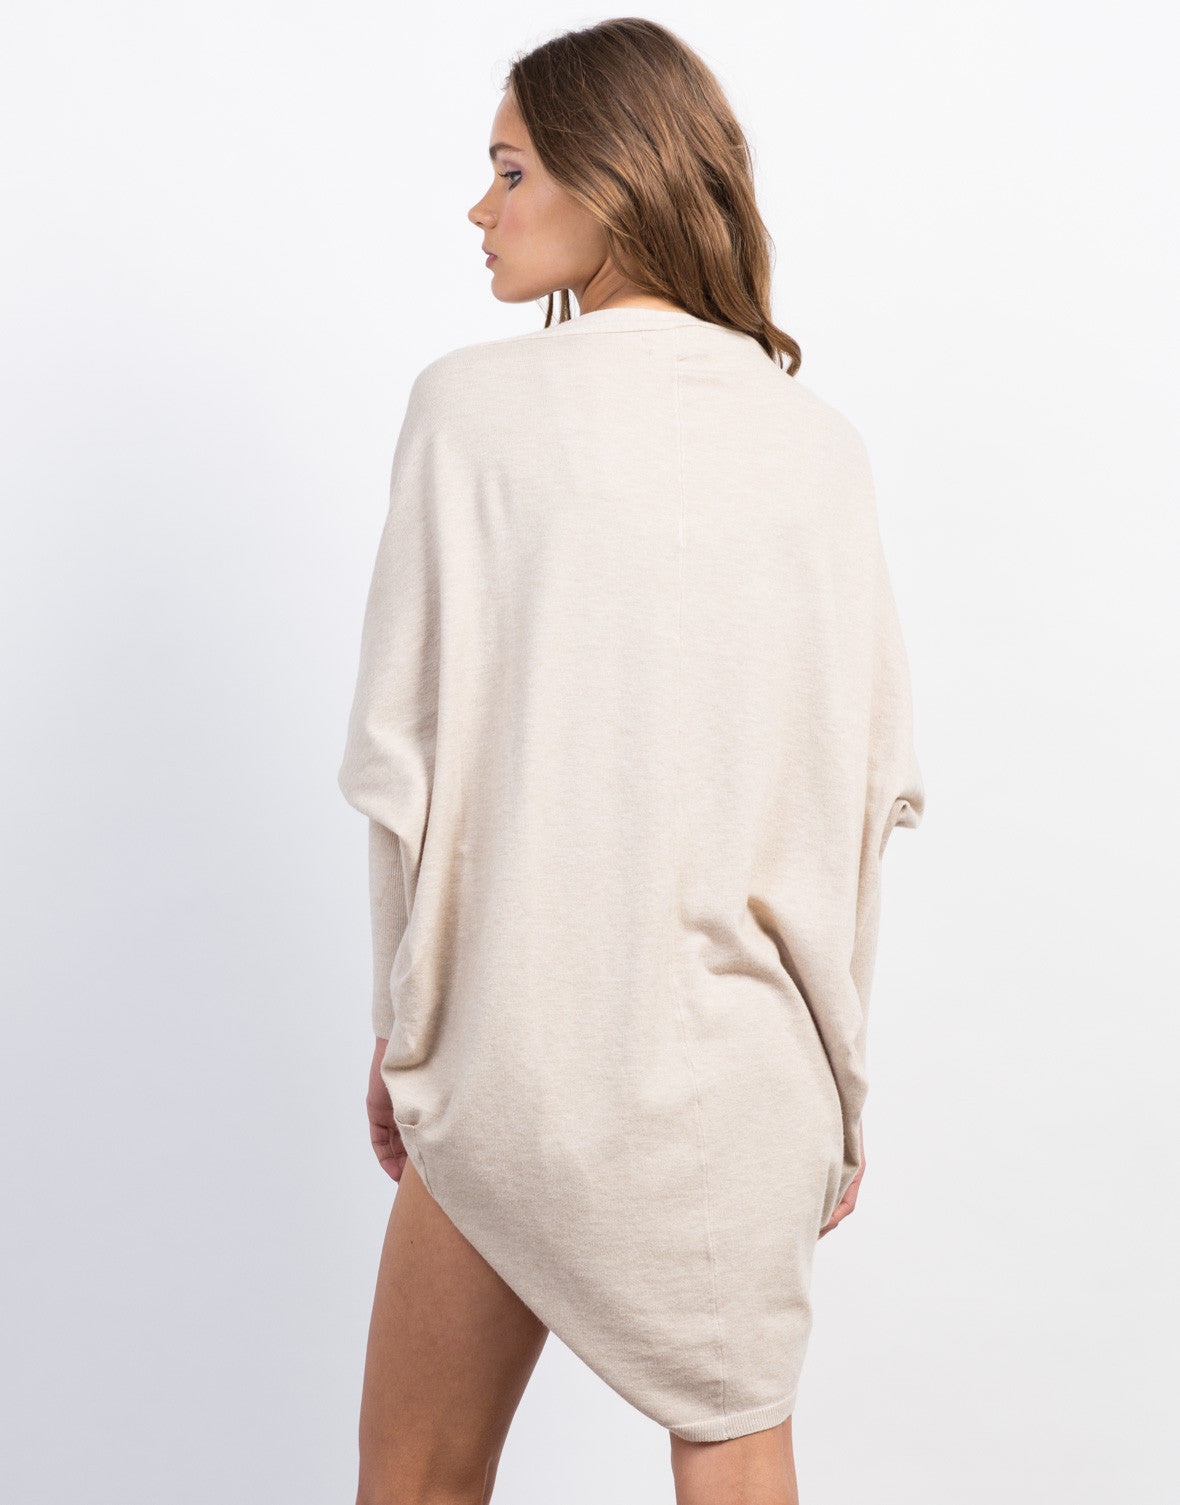 Back View of Dolman Sweater Cardigan